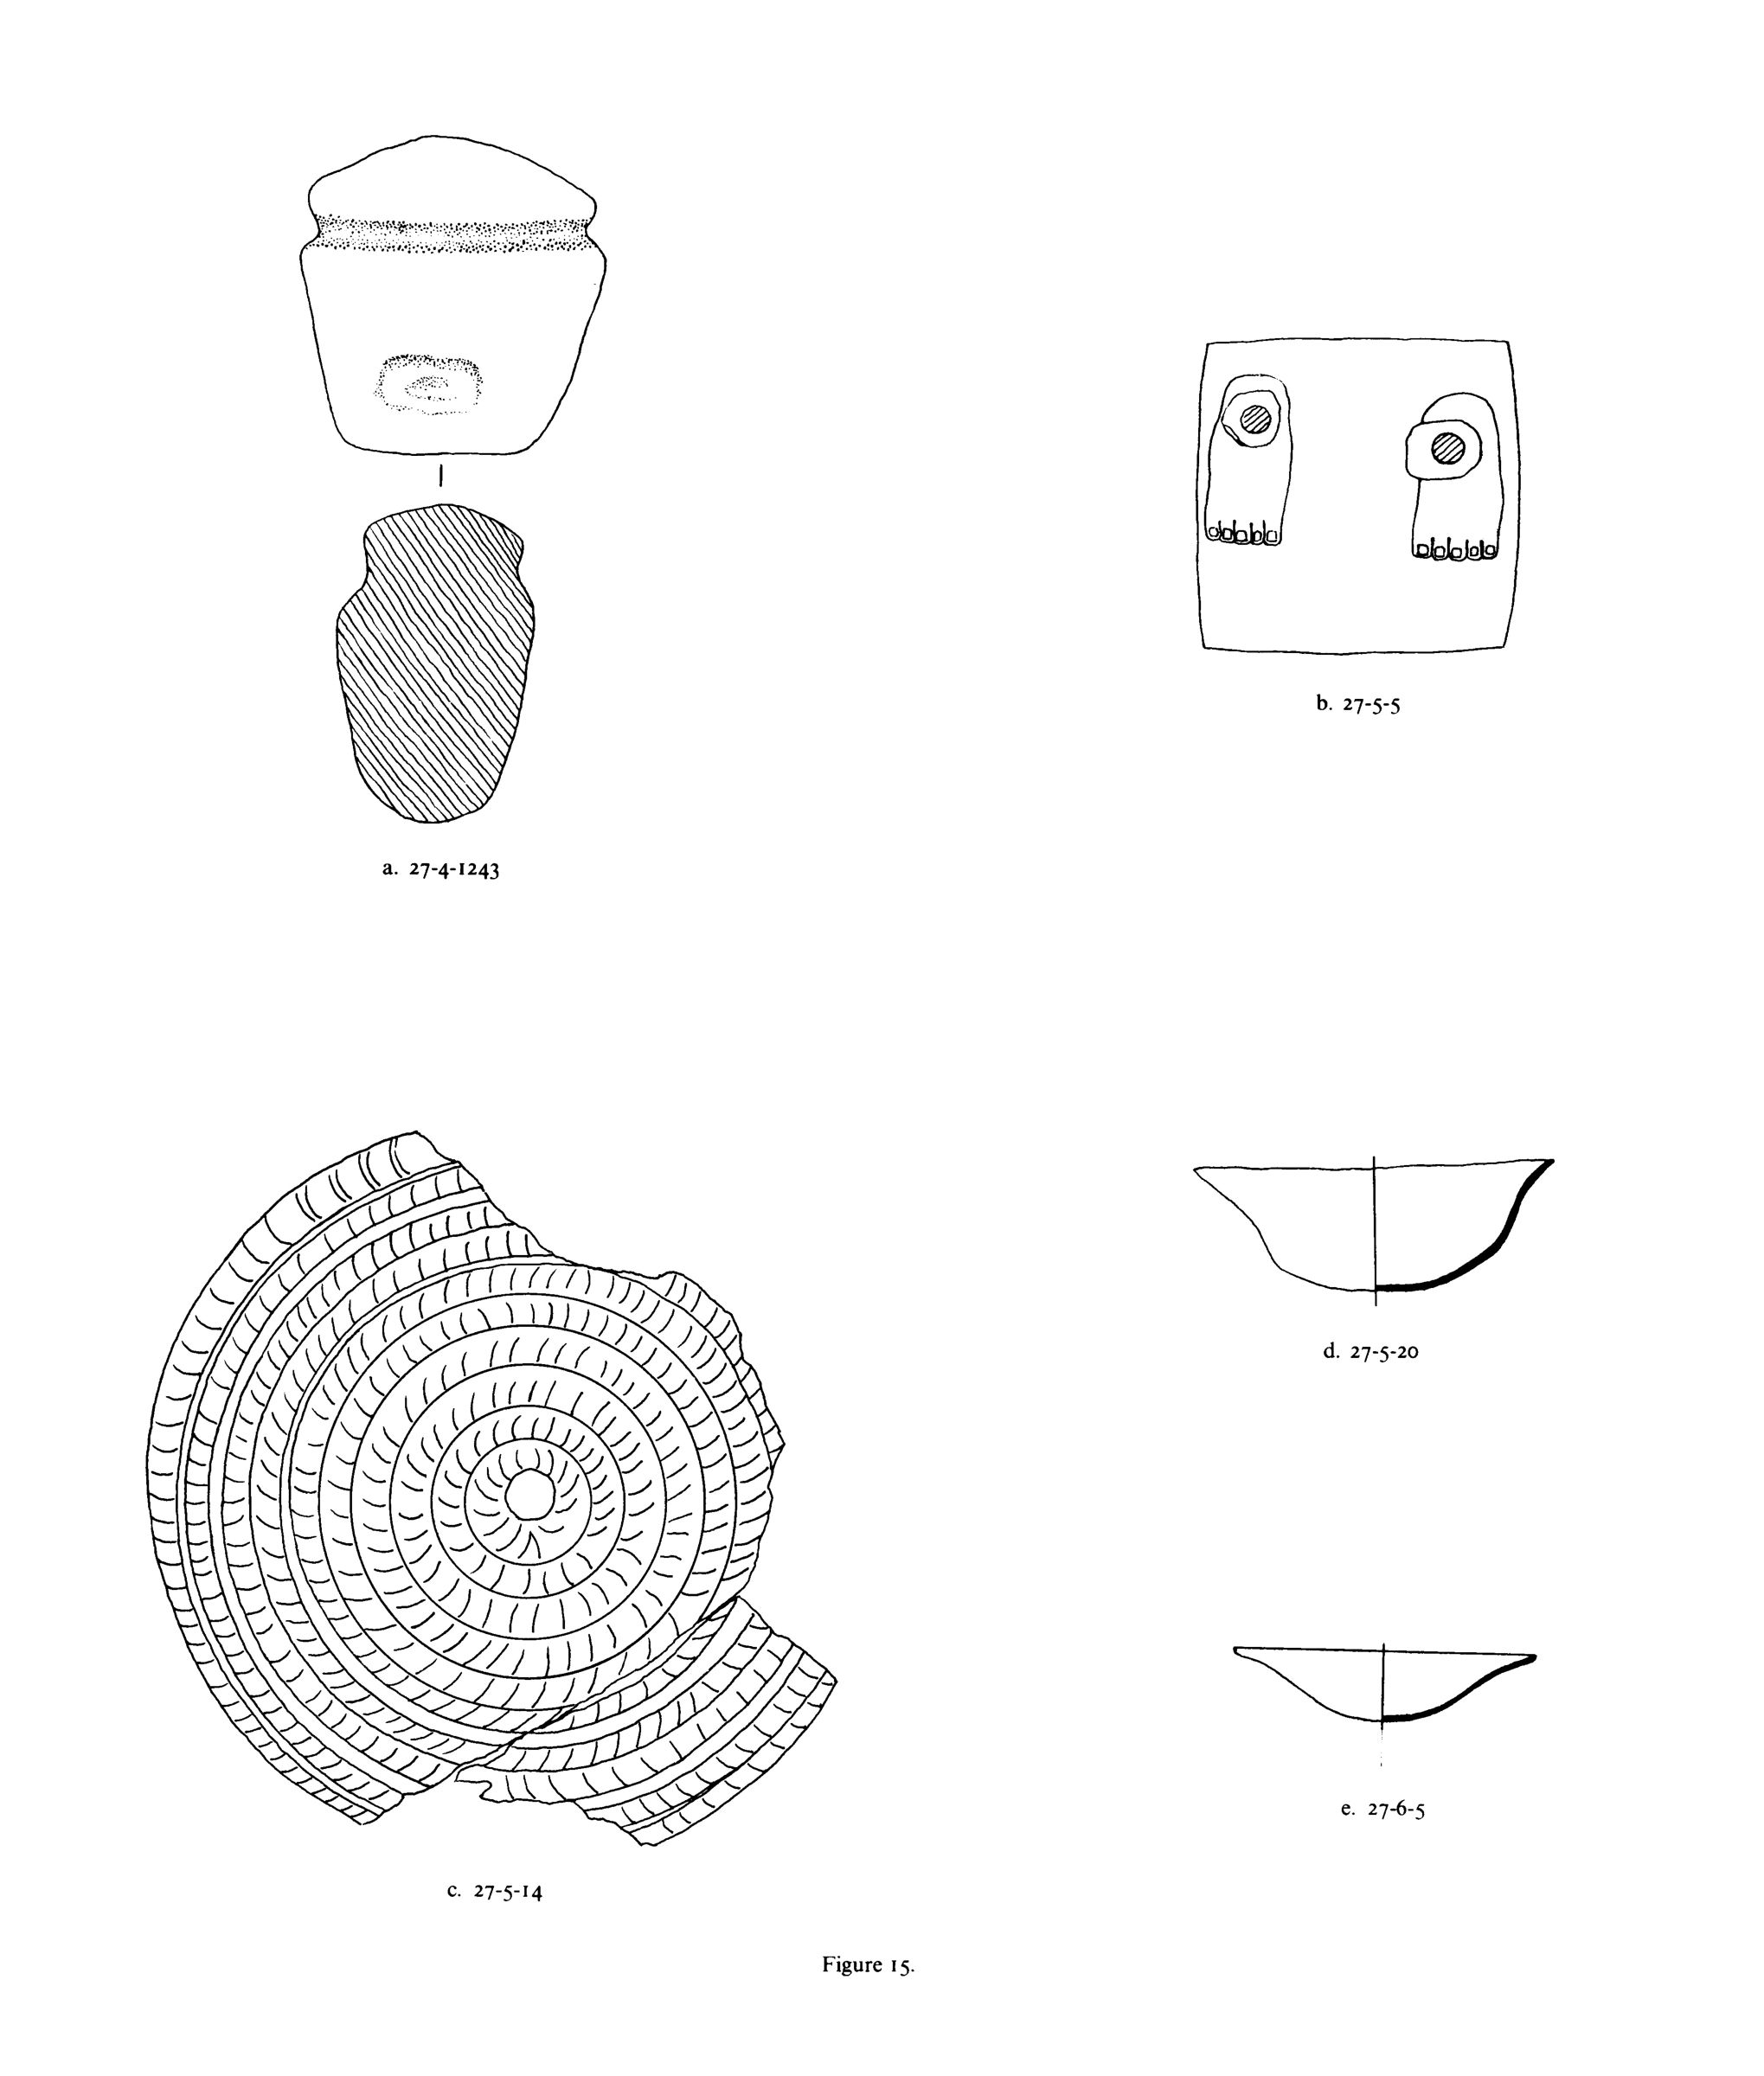 Drawings: G 7530-7540: objects